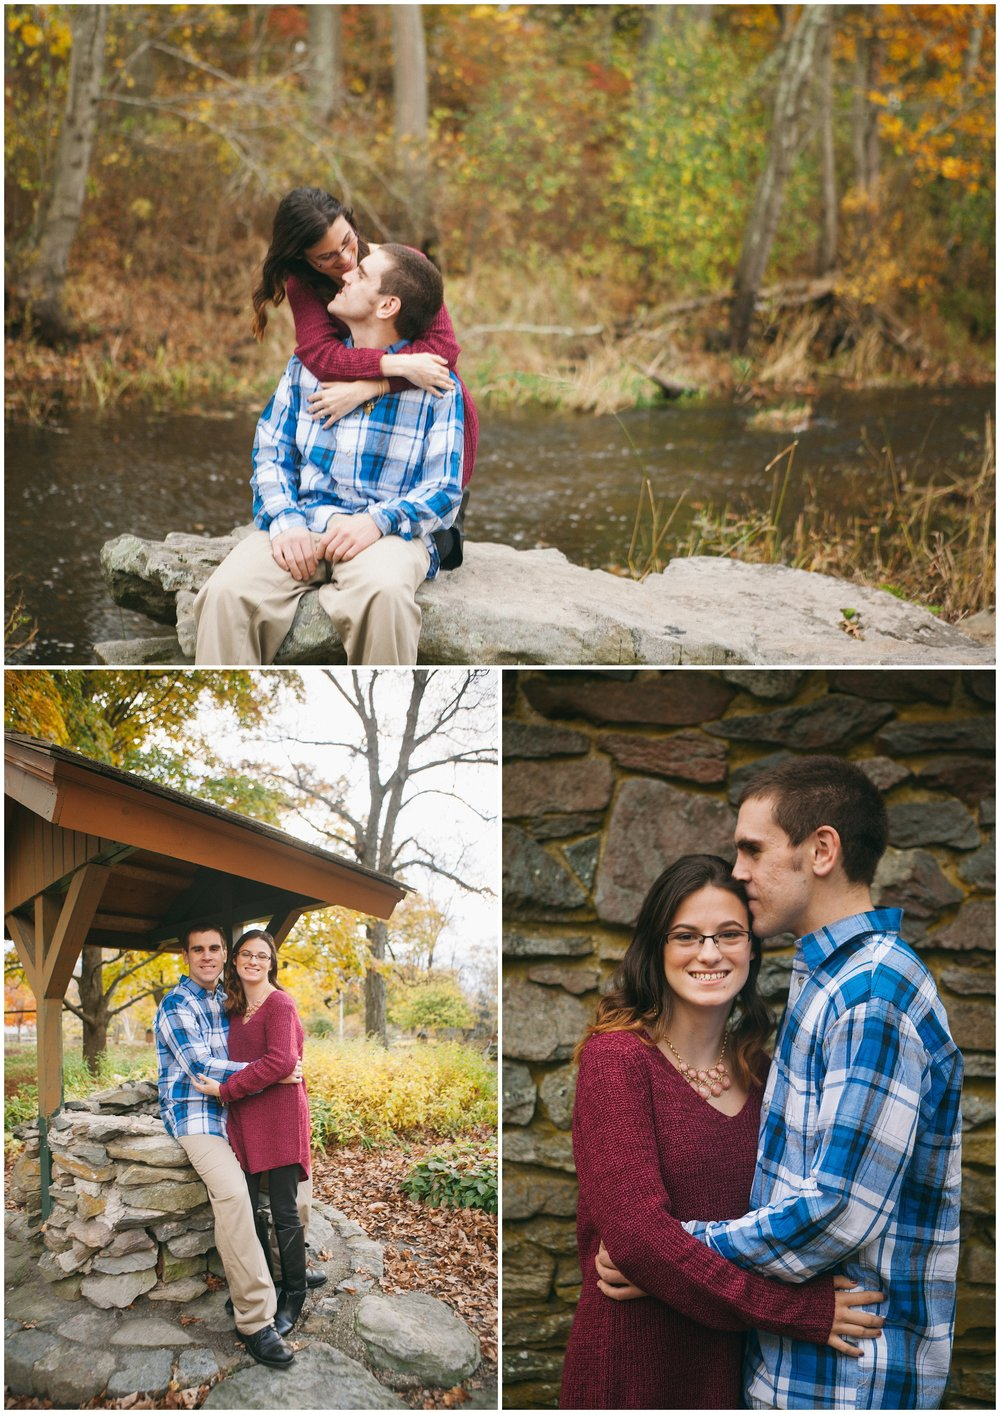 Massachusetts Engagement Photography - Collage of couple dressed for Fall weather by Ryan Richardson Photography.